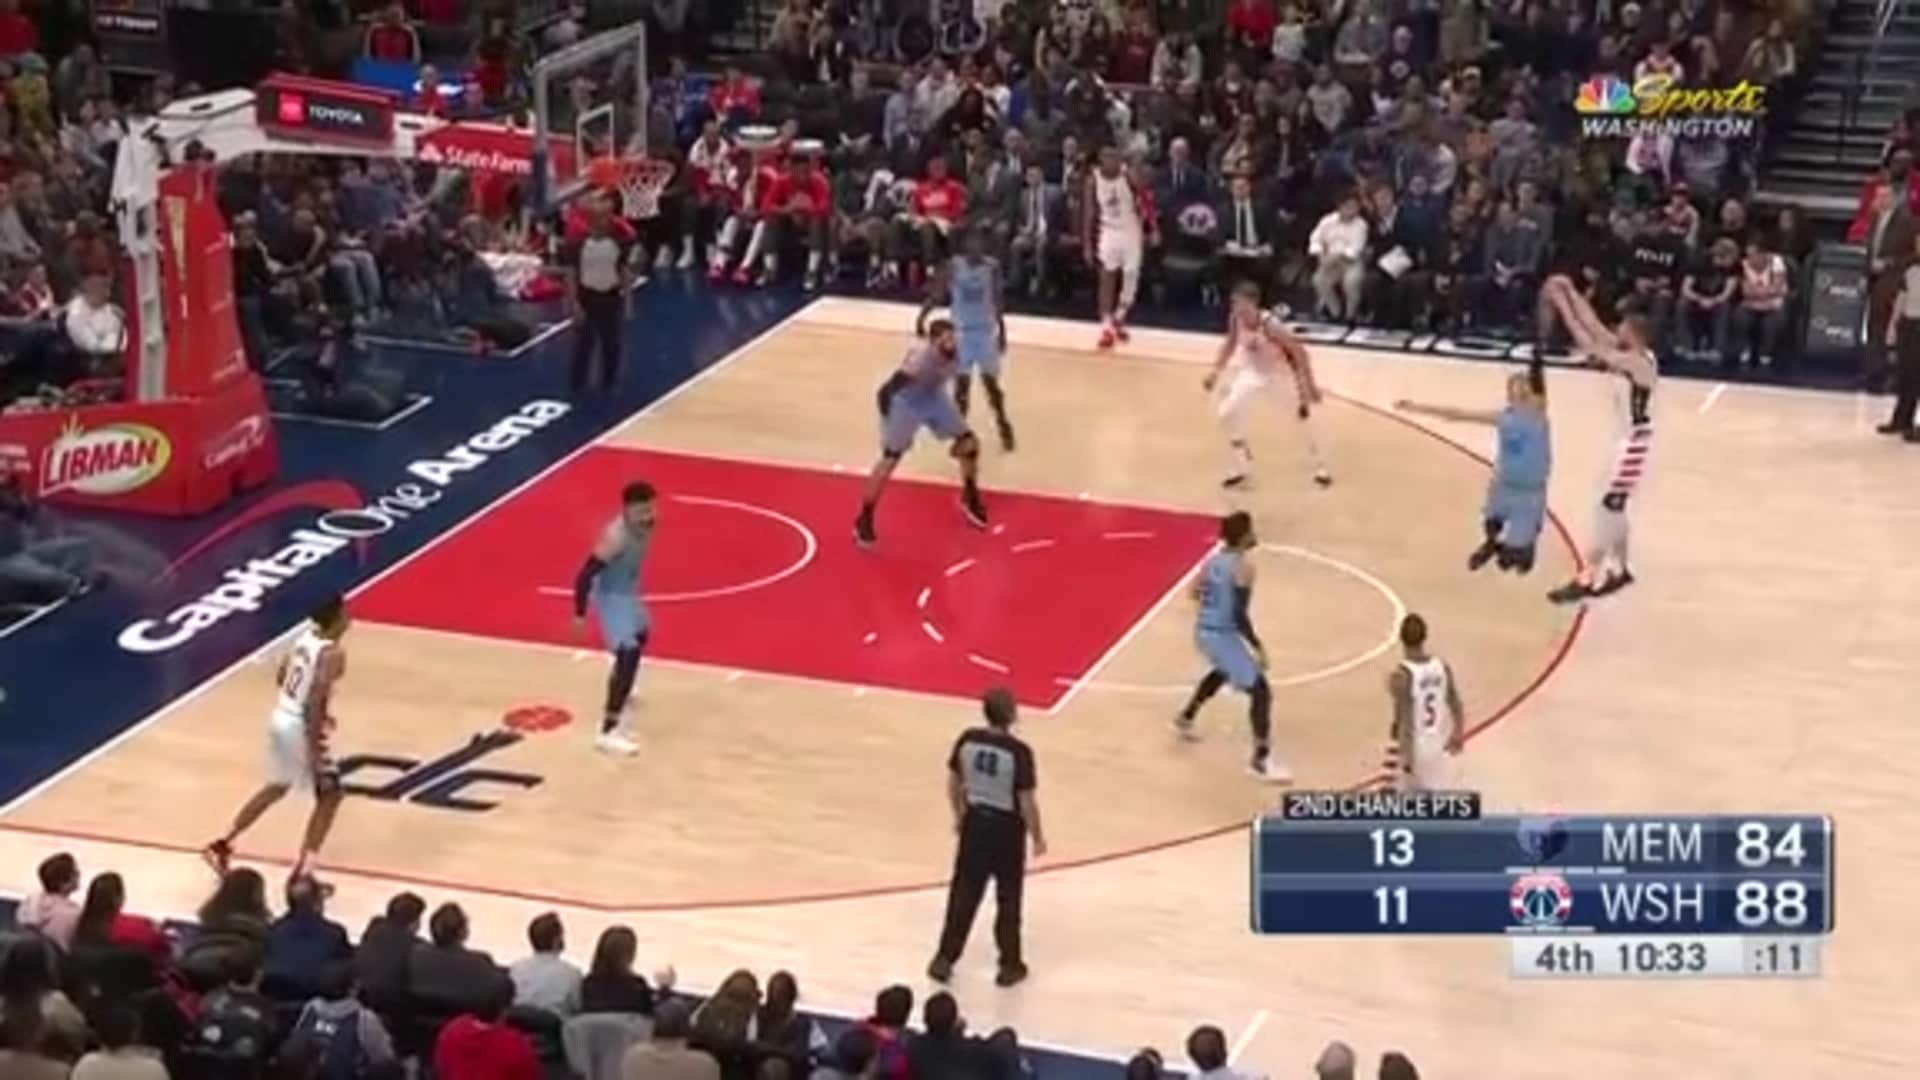 Highlights: Wizards vs. Grizzlies - 02/09/20